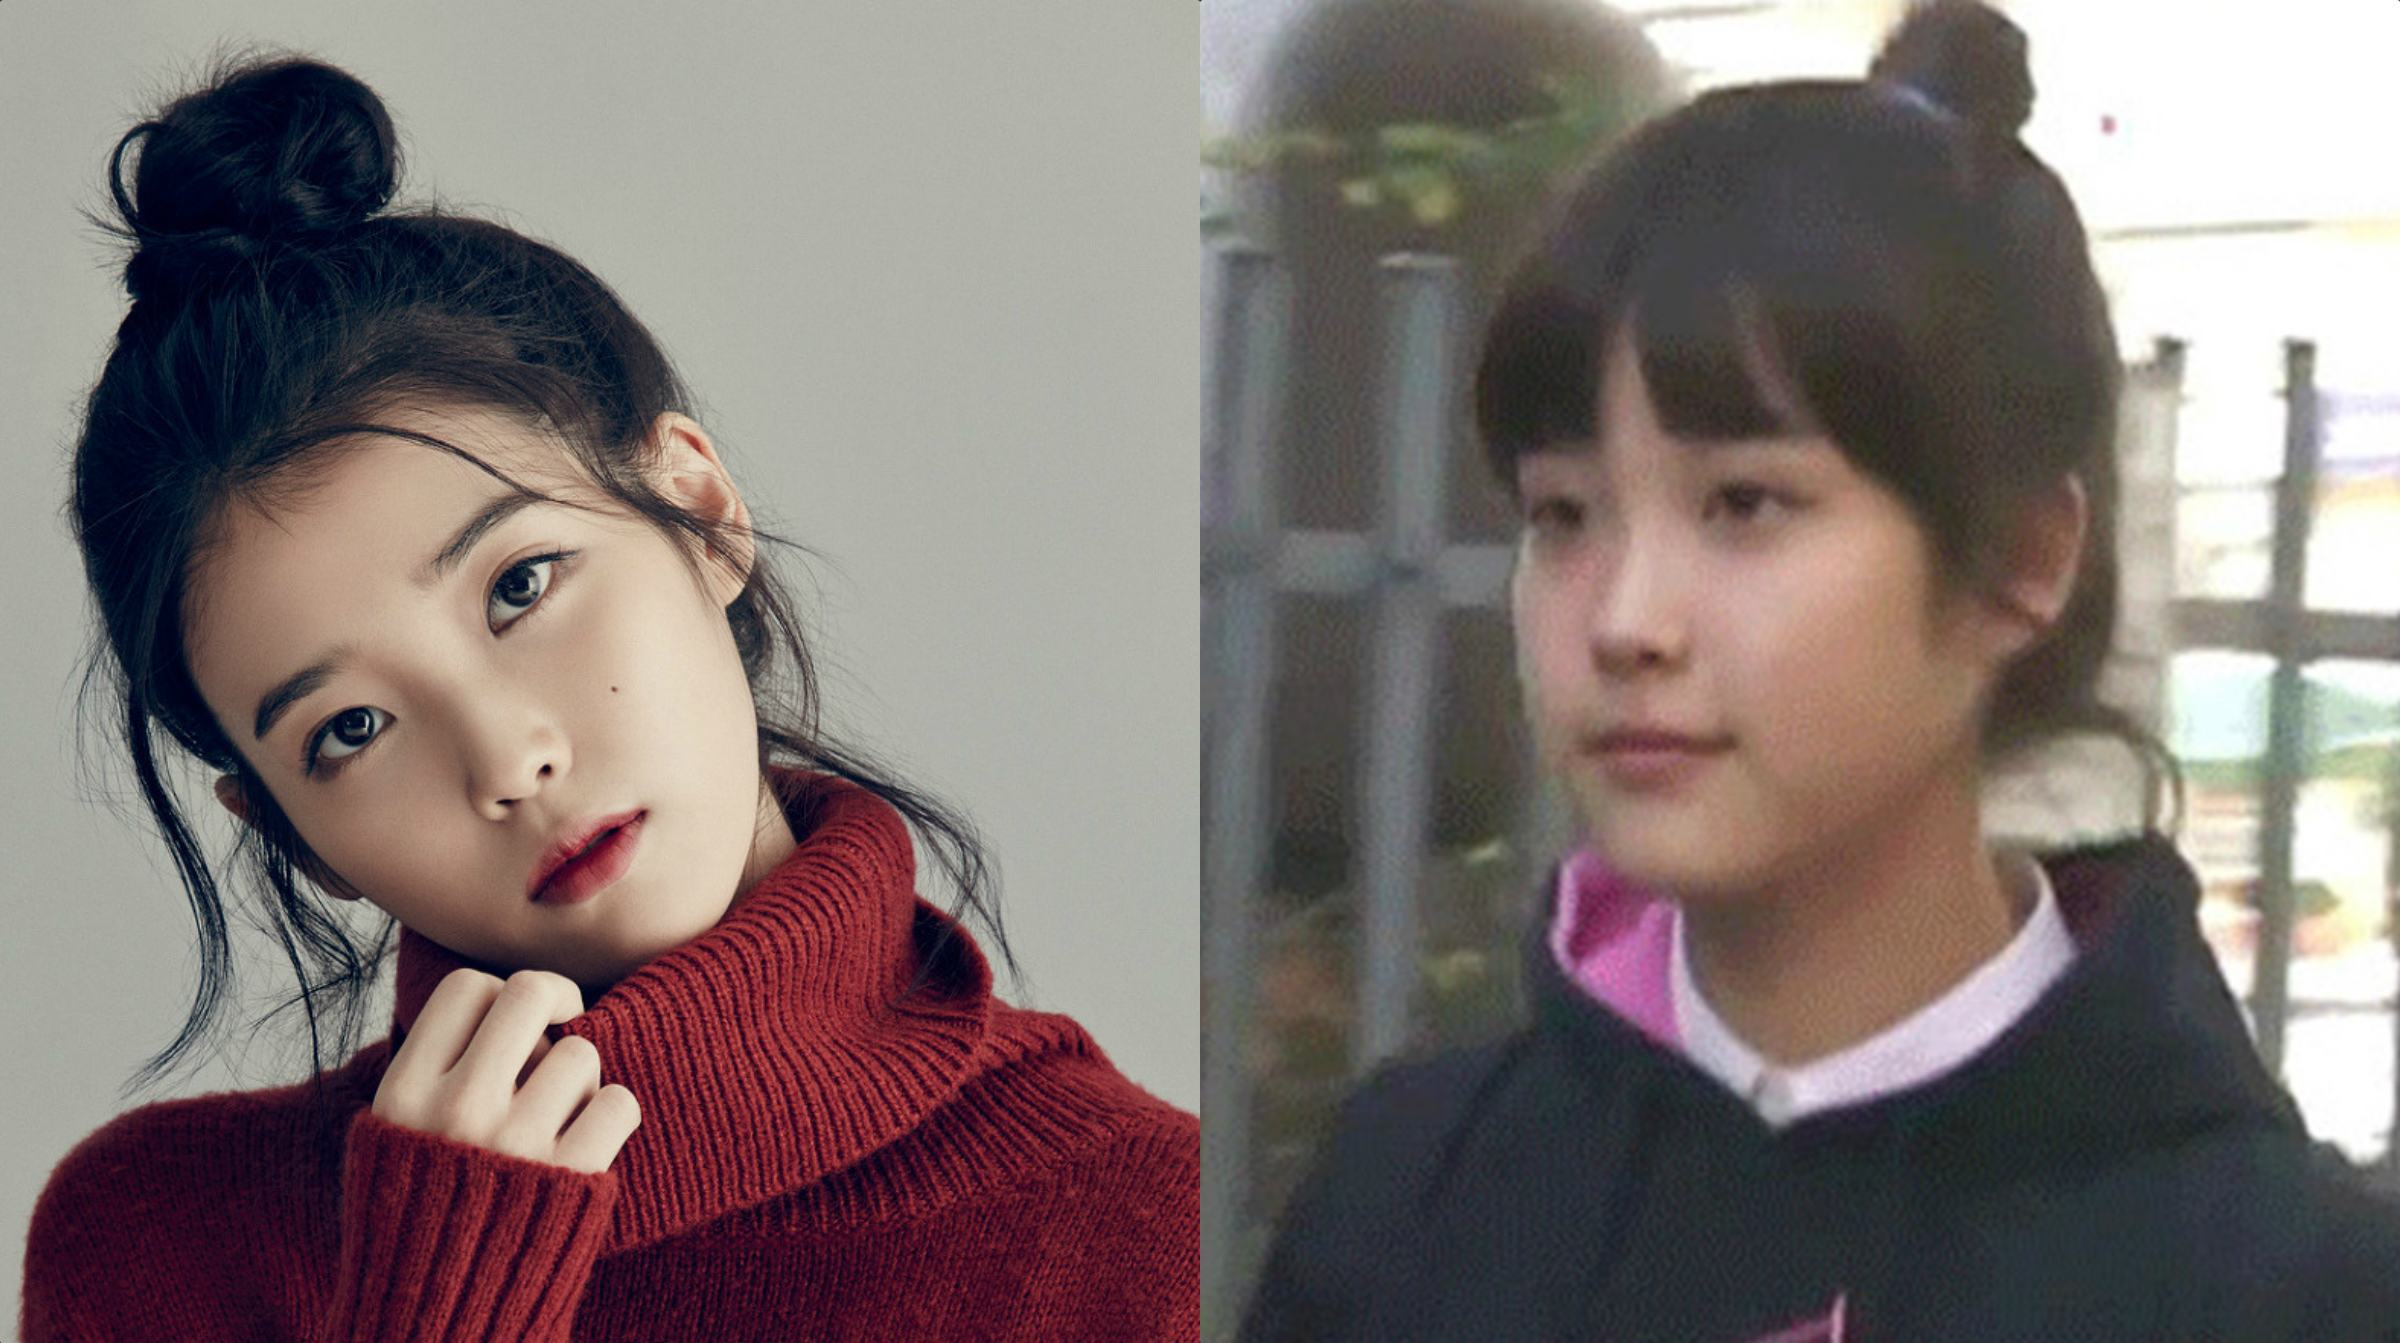 Fans Shocked By Video of IU in Middle School